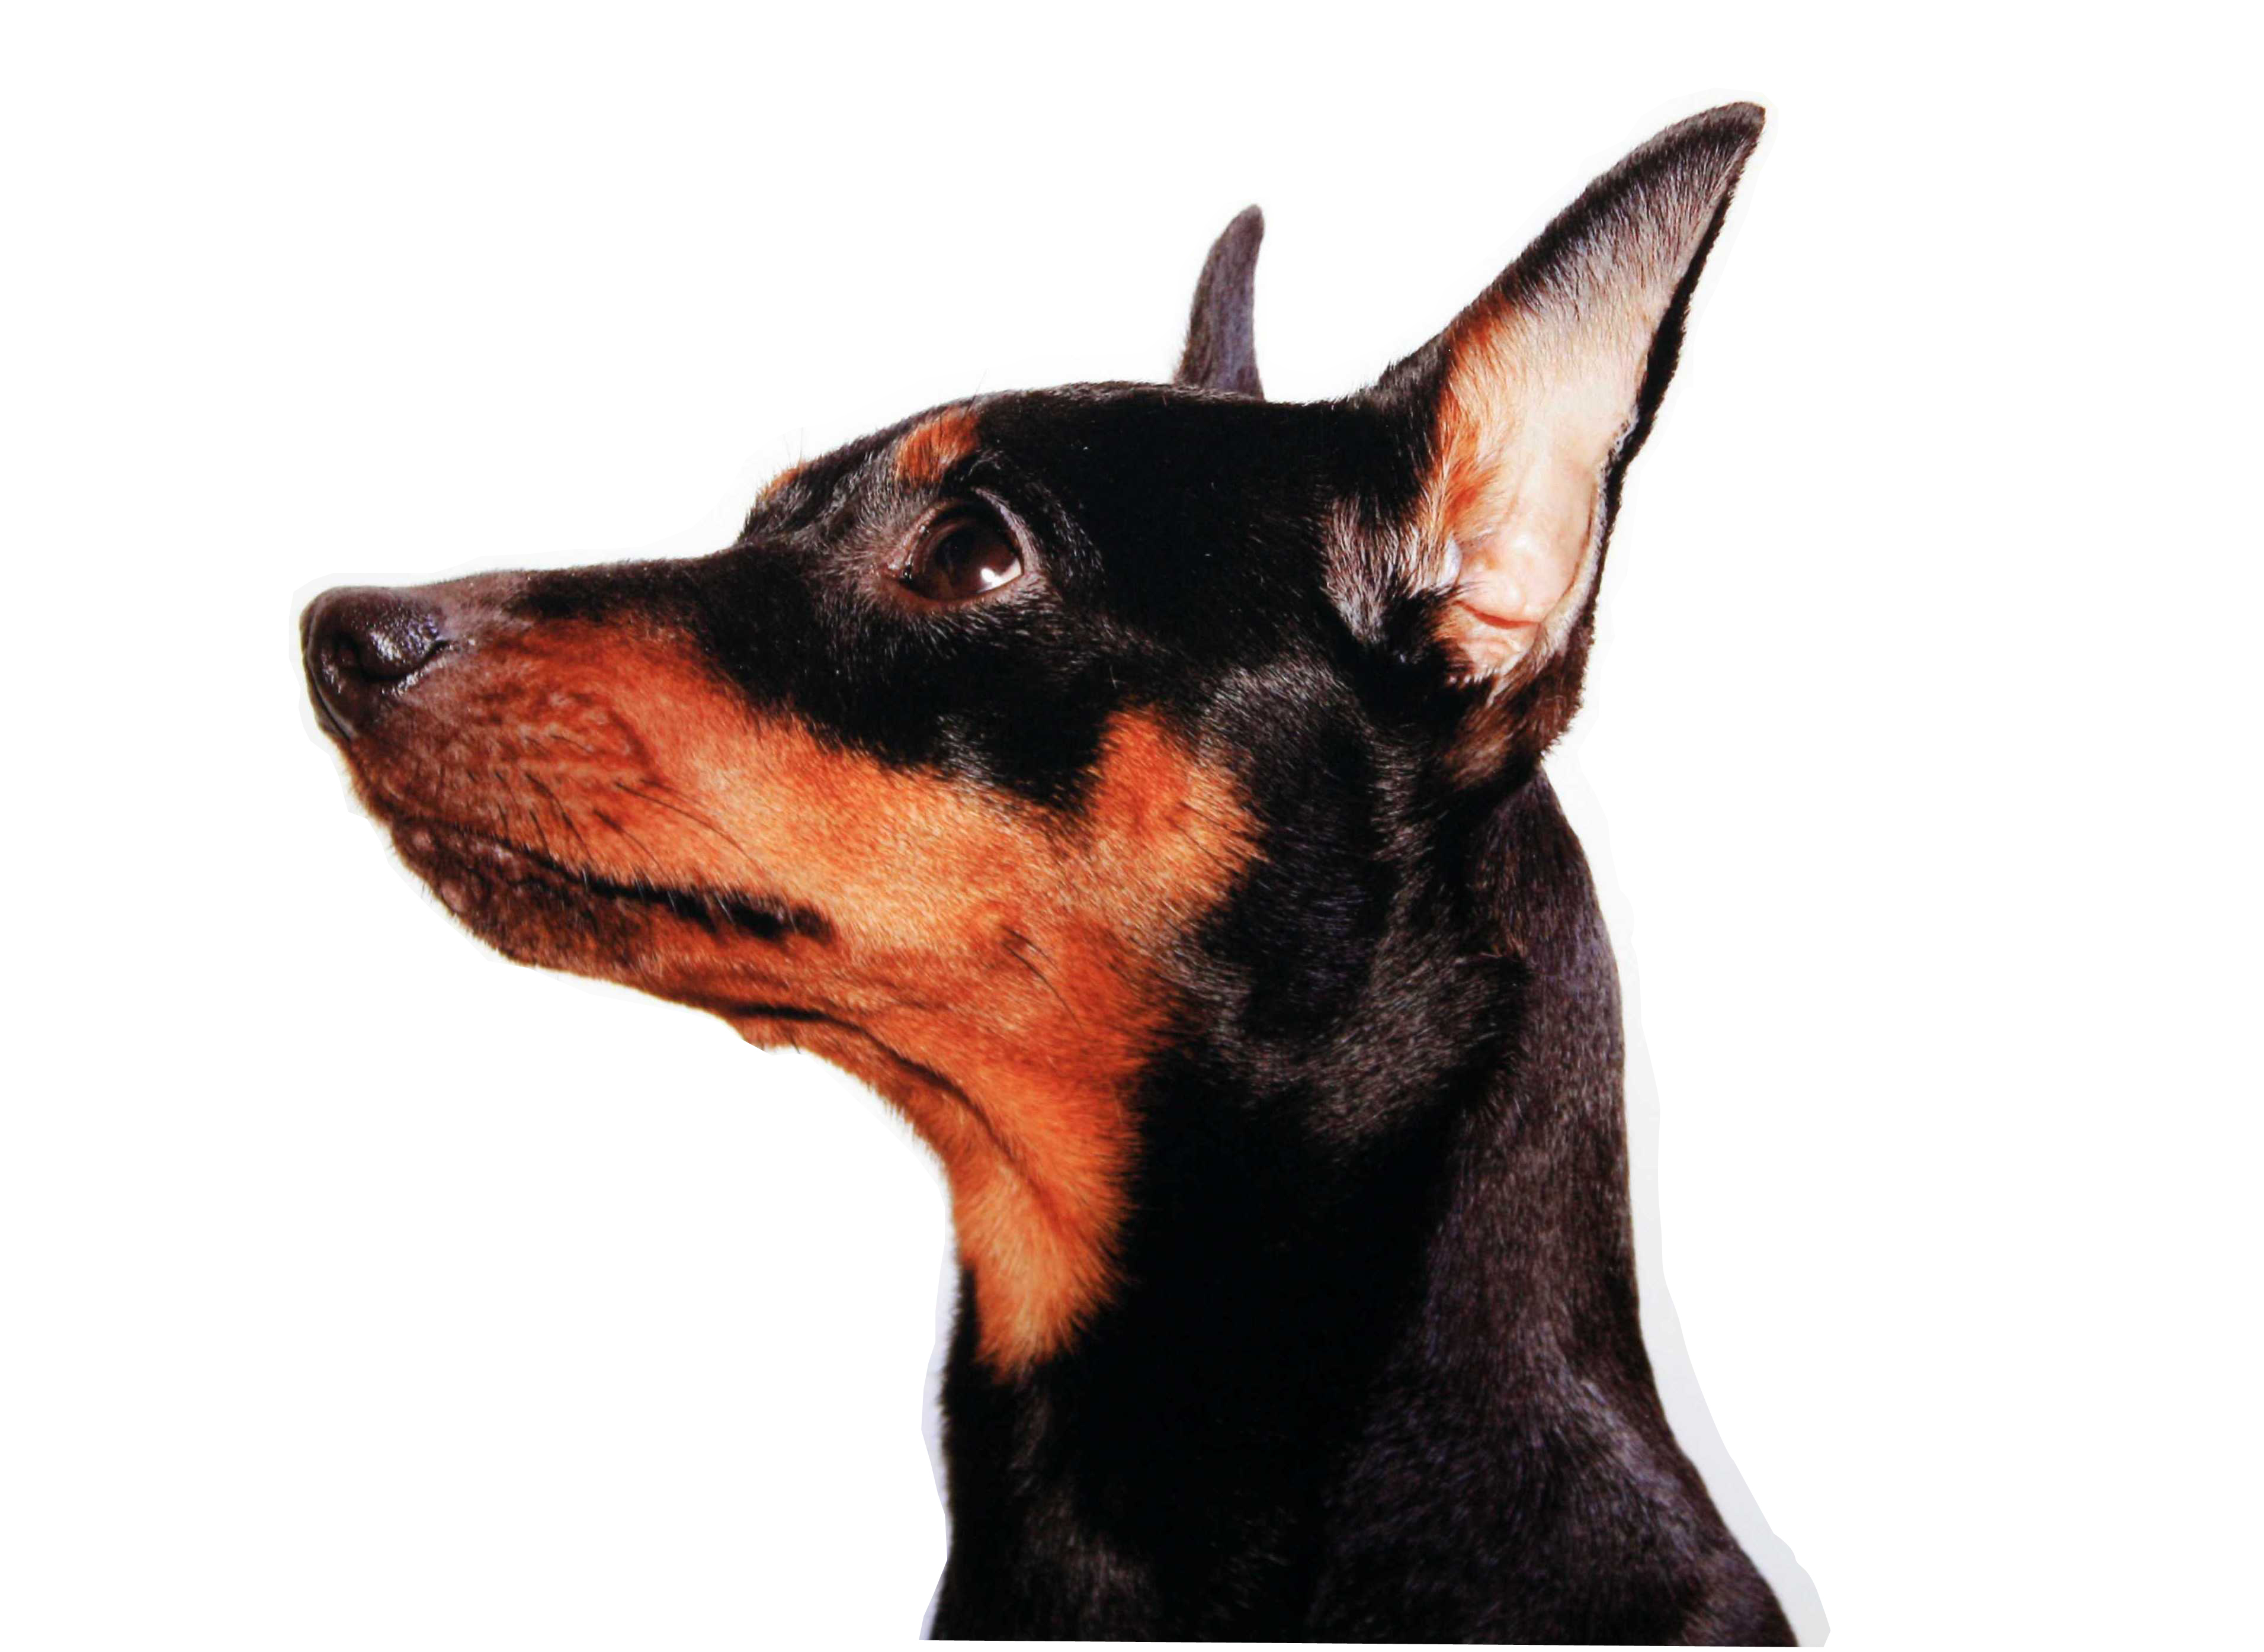 Miniature Pinscher face close up wallpapers and images   wallpapers 3822x2789